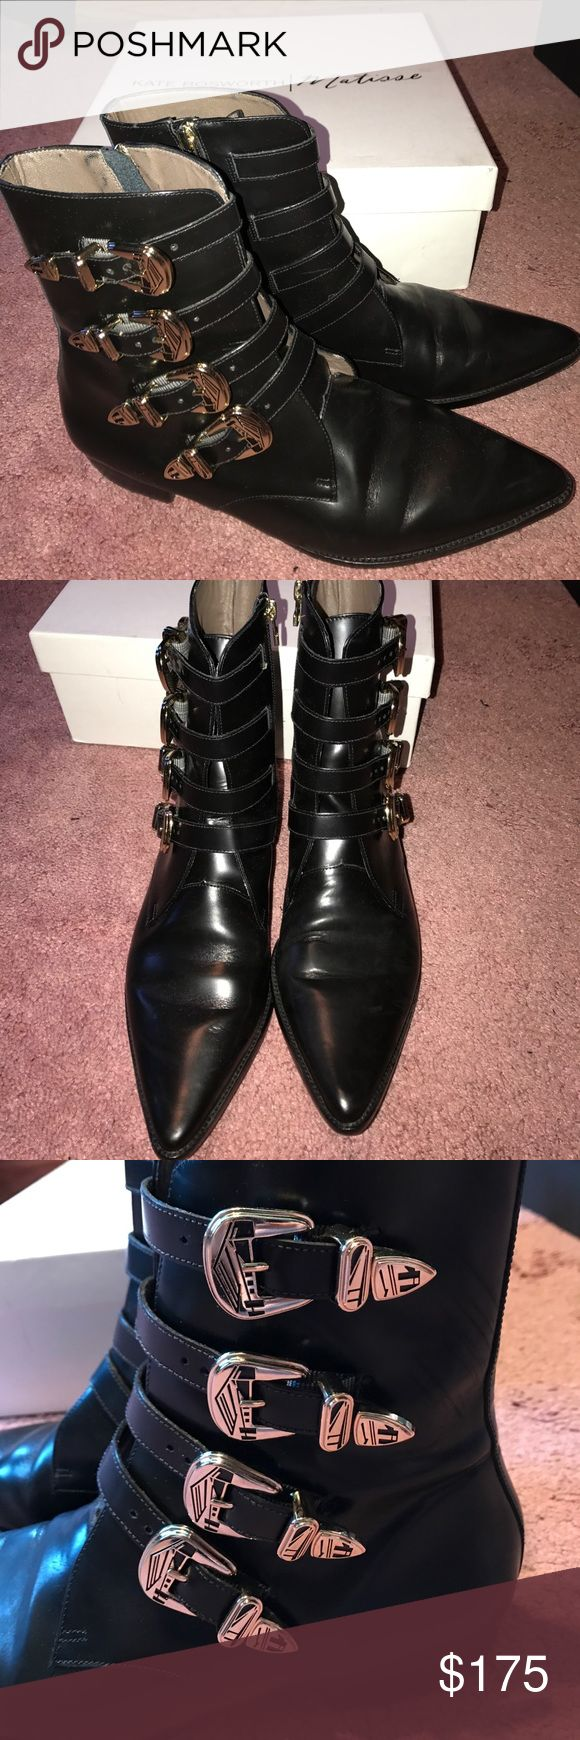 Kate Bosworth for Matisse Boots Kate Bosworth for Matisse boots with pointed toe and buckle details. In great condition, only worn once. Comes with box and dust bag. Matisse Shoes Ankle Boots & Booties